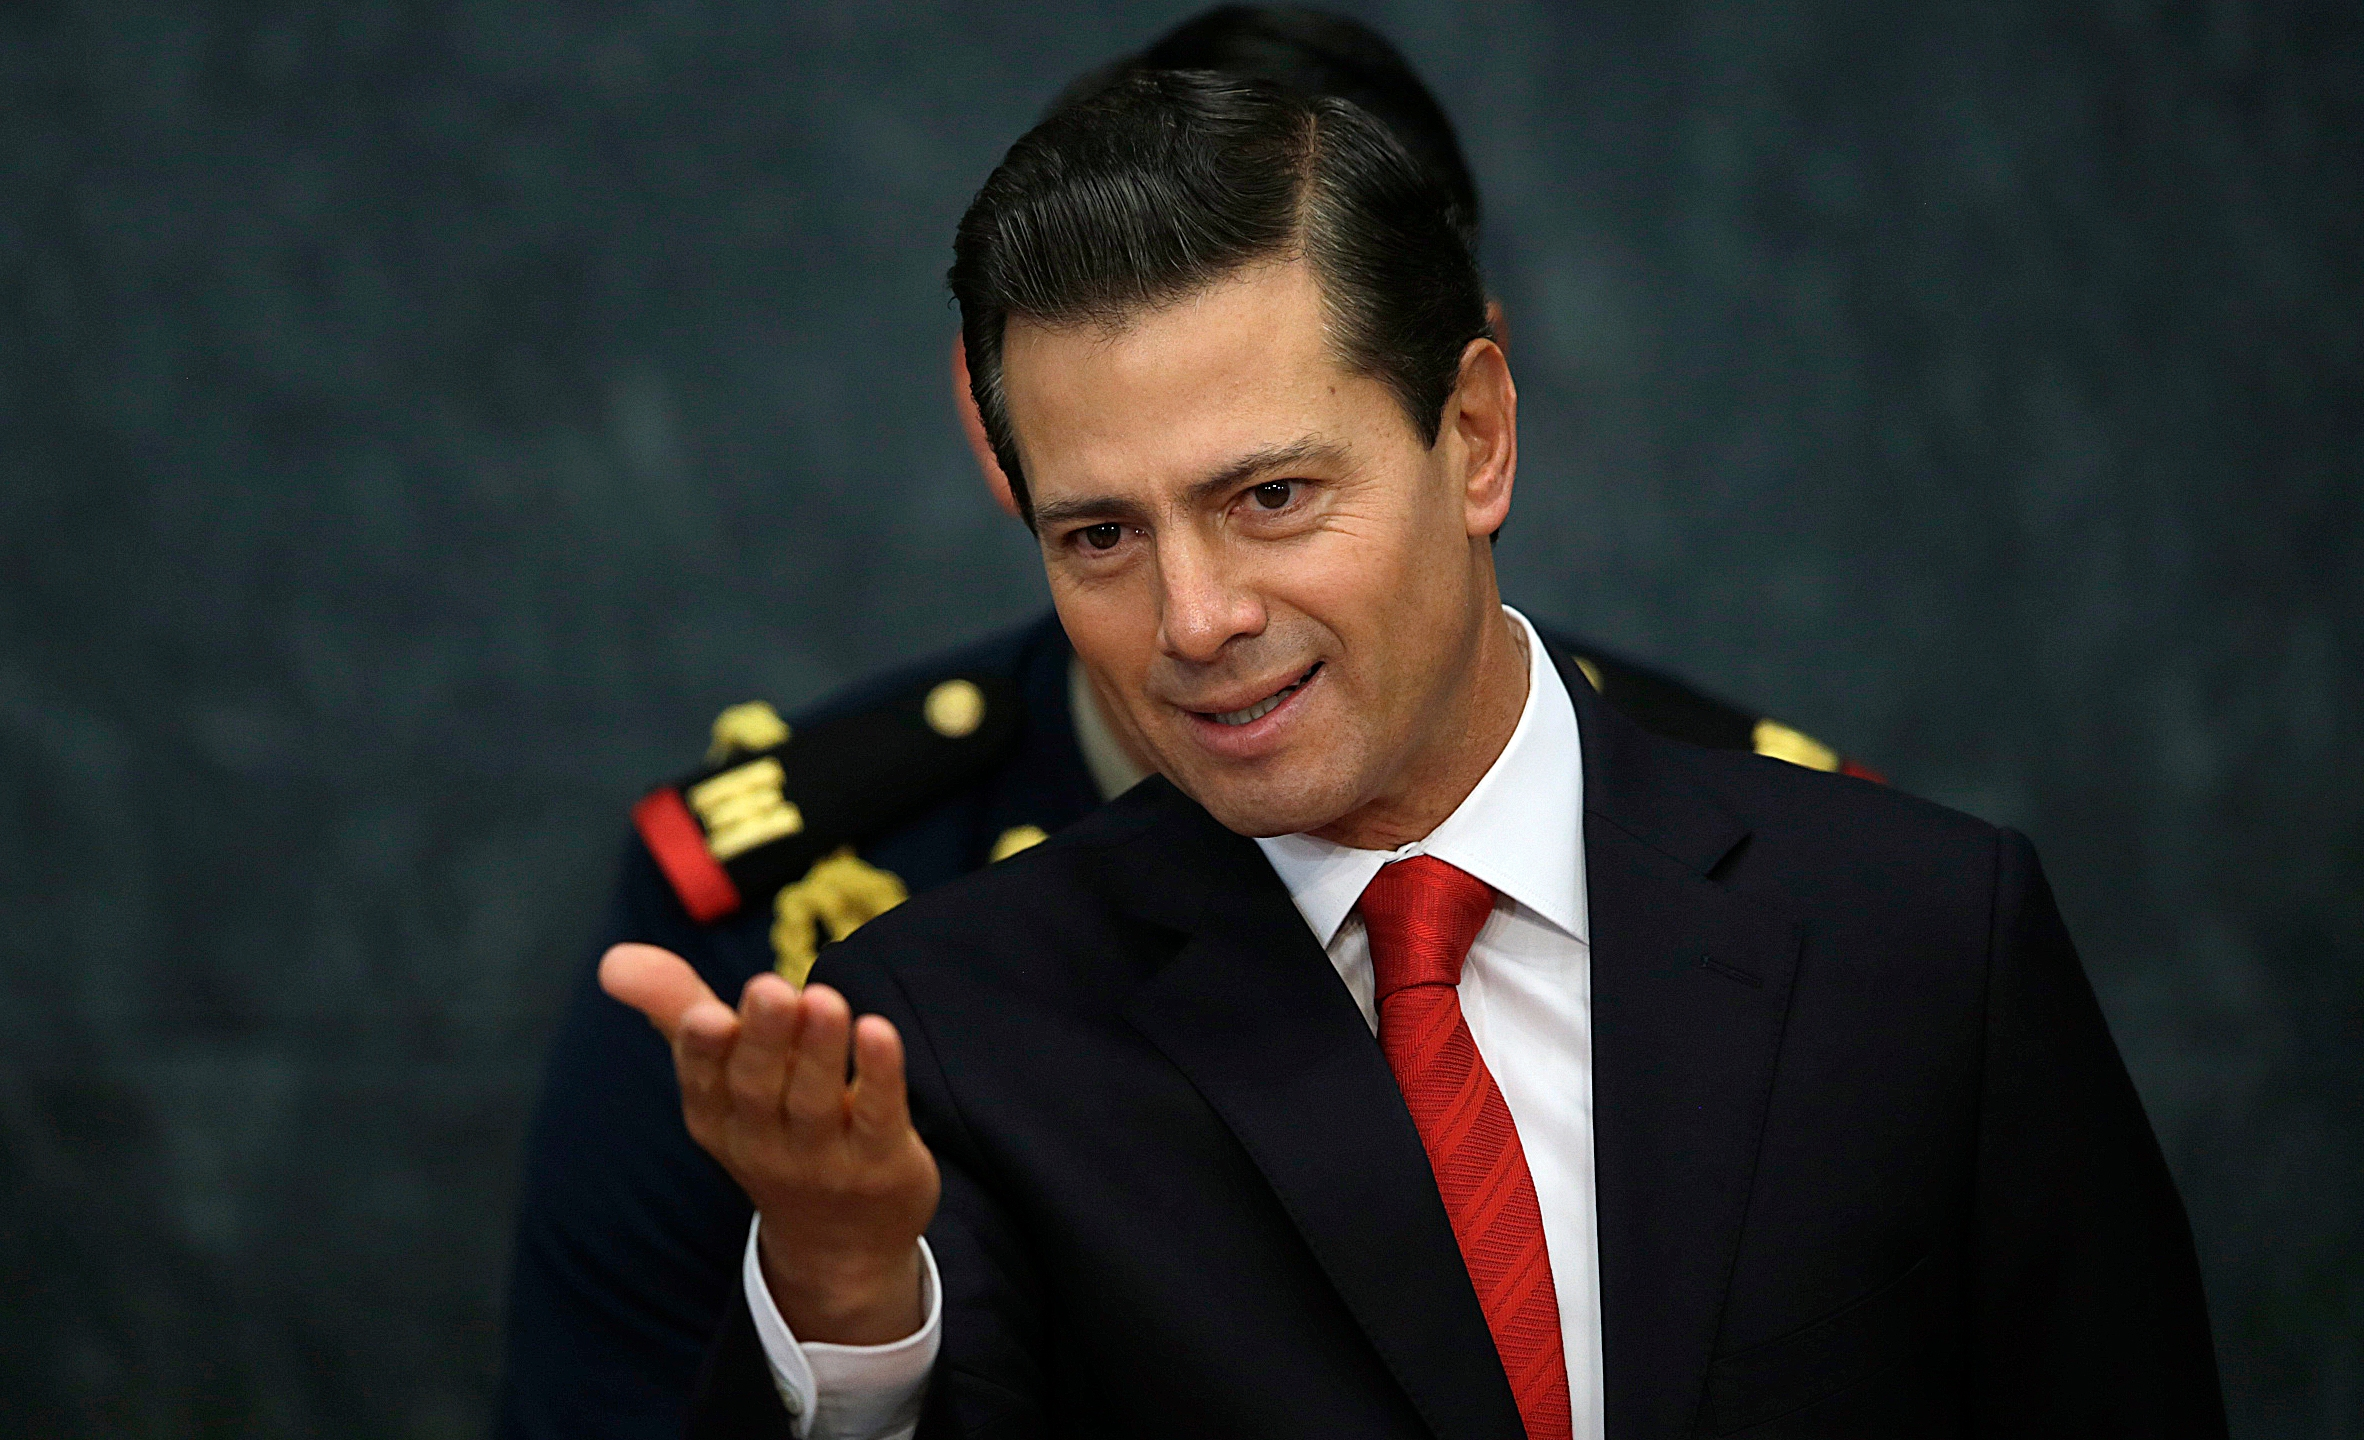 Enrique Pena Nieto Photo by Marco Ugarte, AP Photo_270581